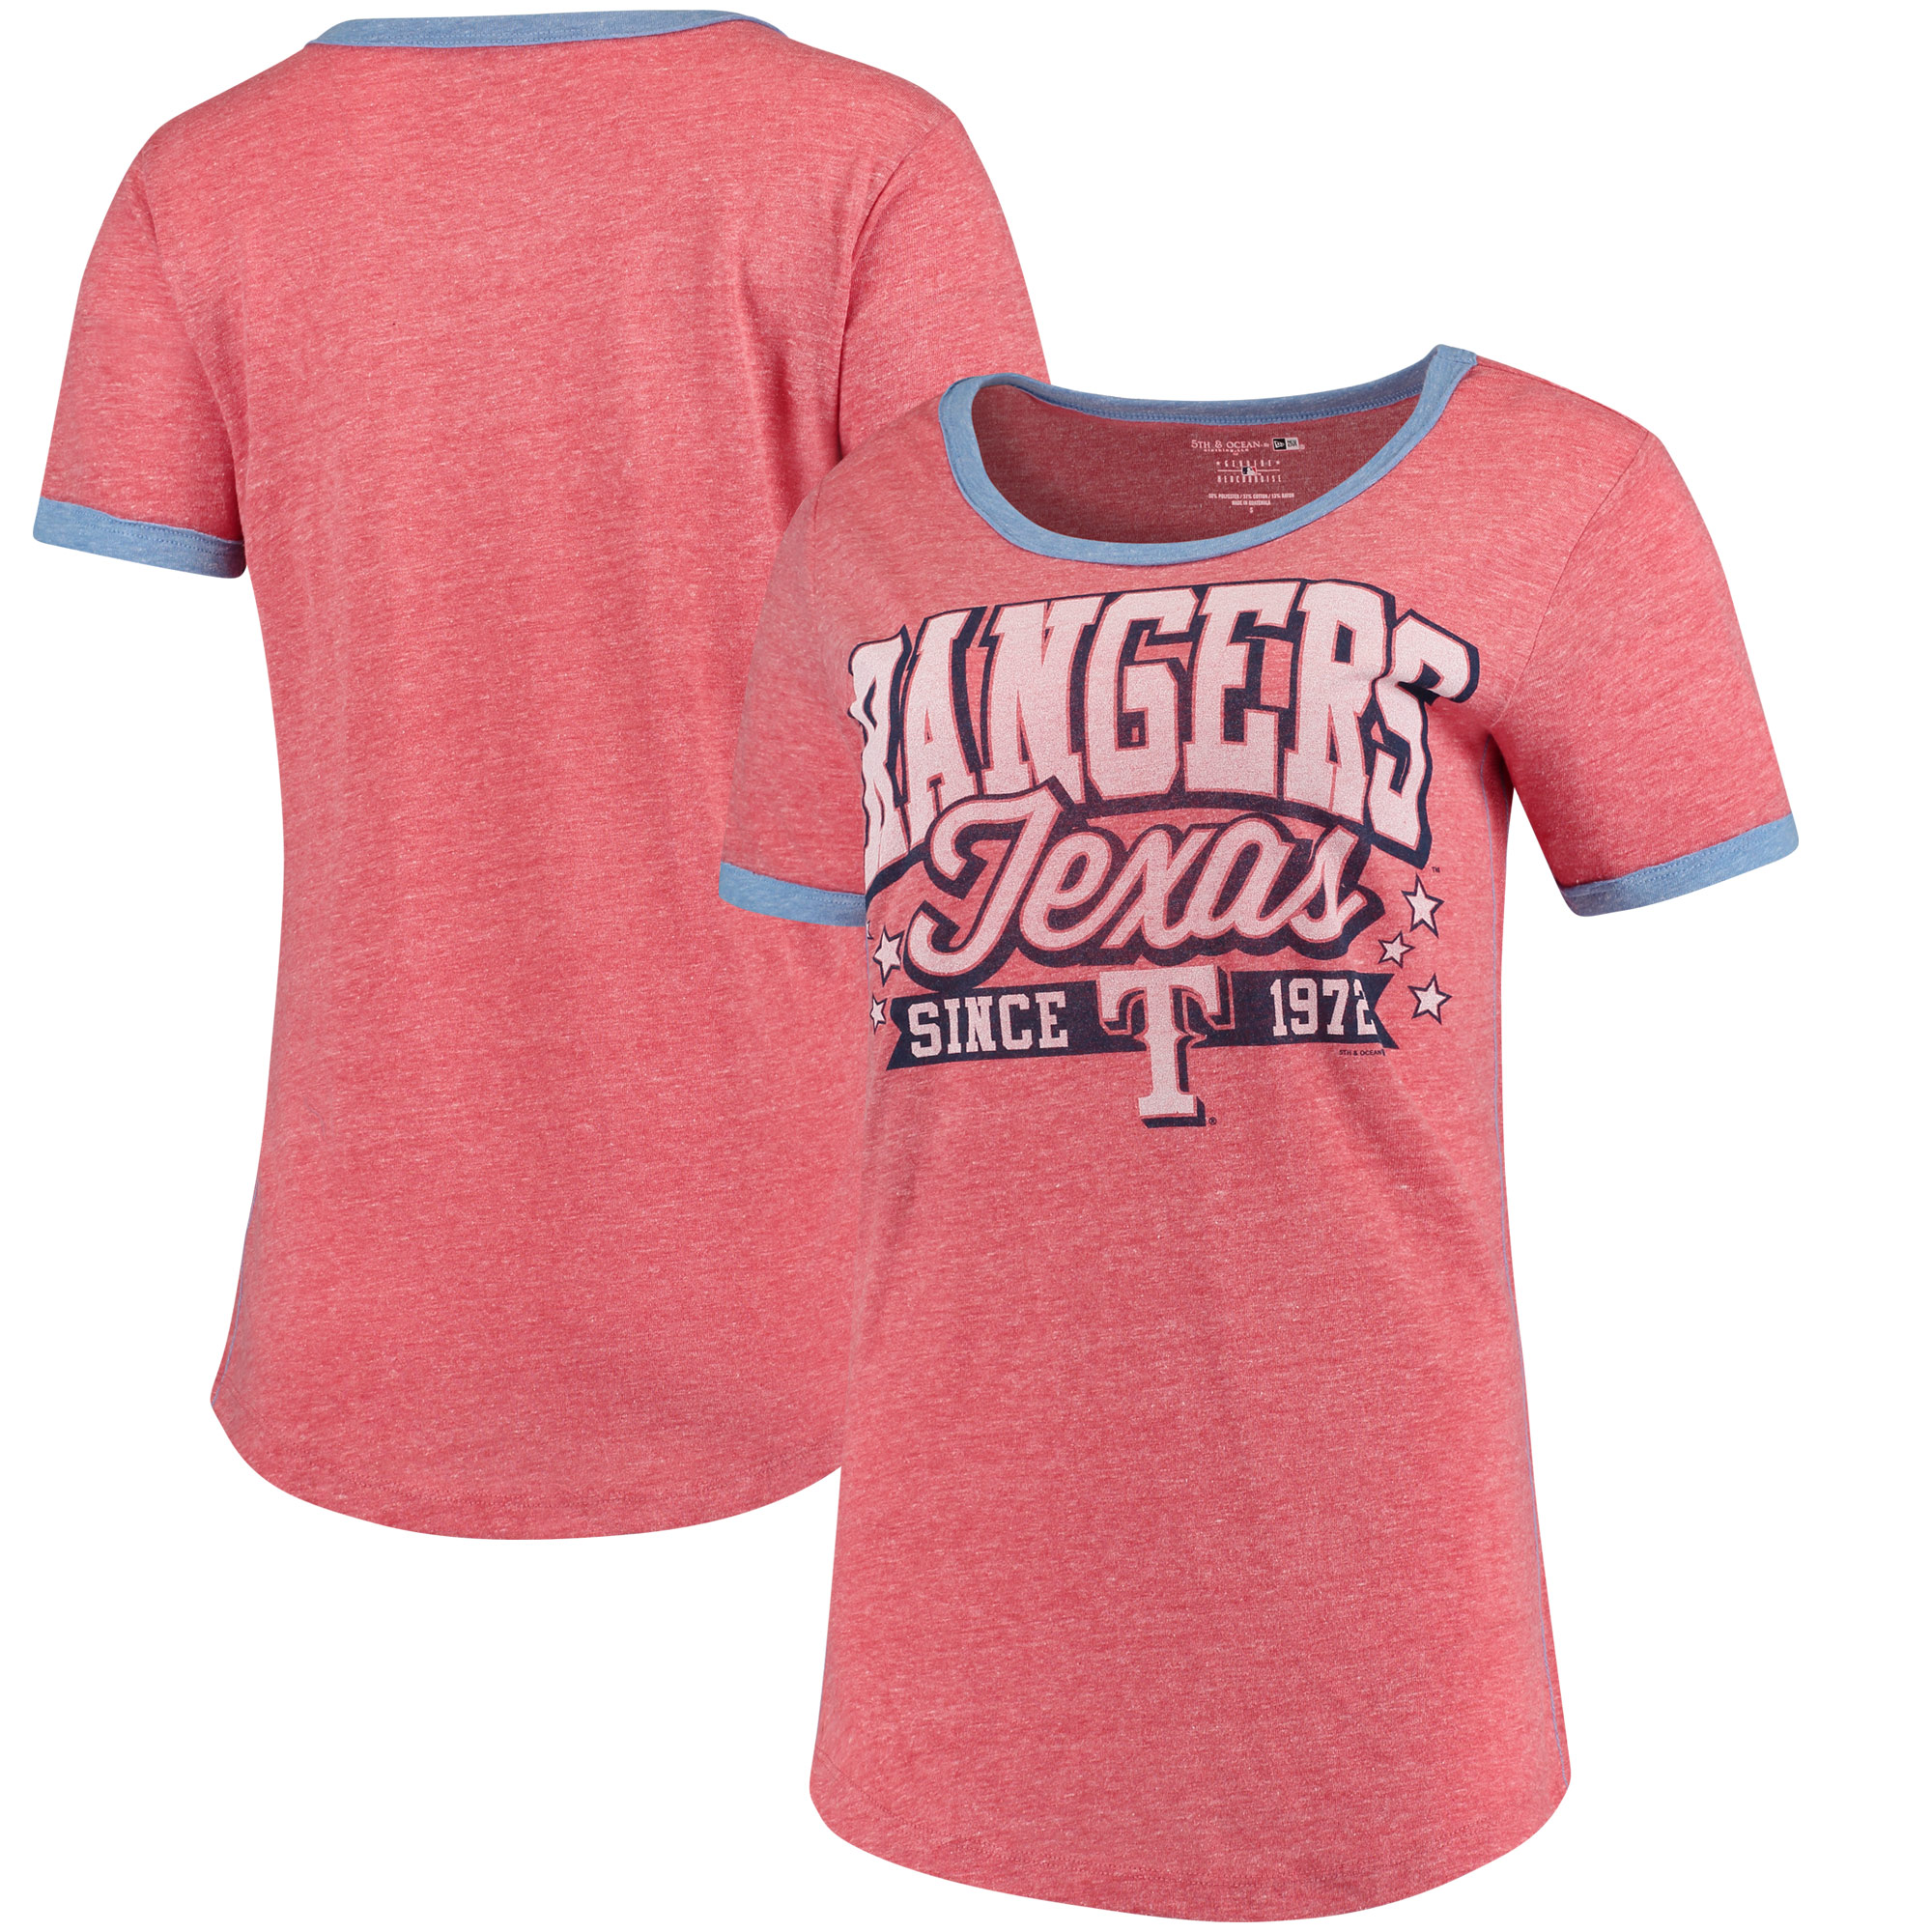 Texas Rangers 5th & Ocean by New Era Women's Jersey Ringer Tri-Blend T-Shirt - Red/Royal